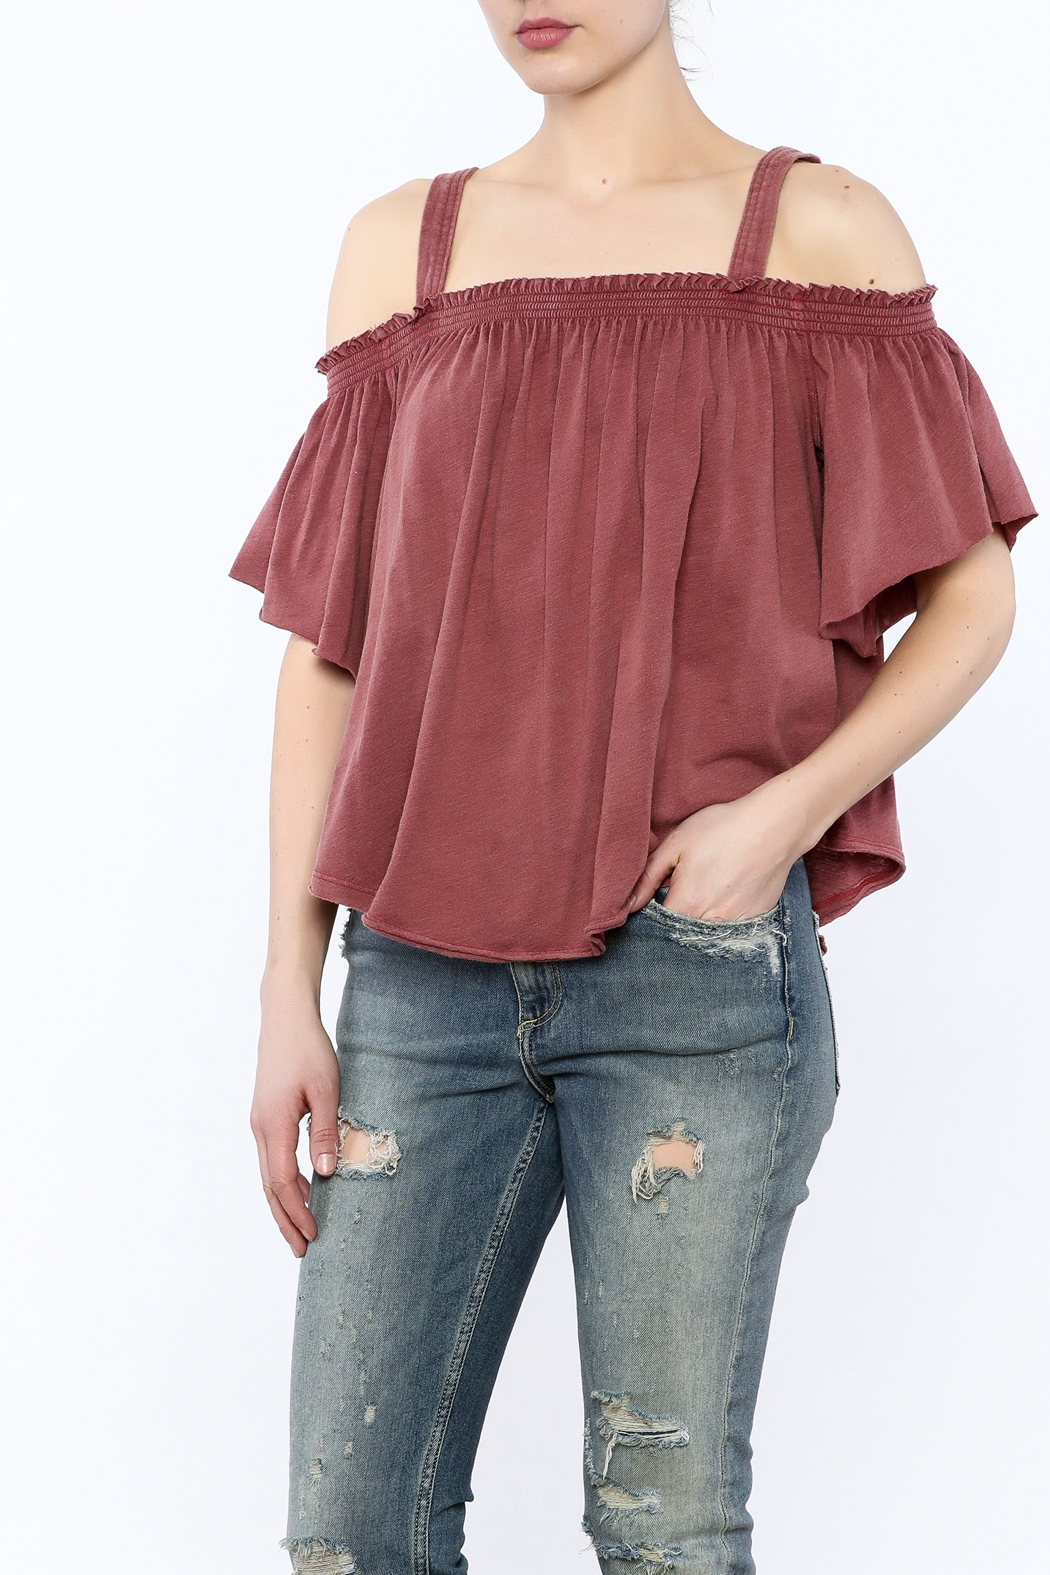 Free People Washed Maroon Top - Front Cropped Image